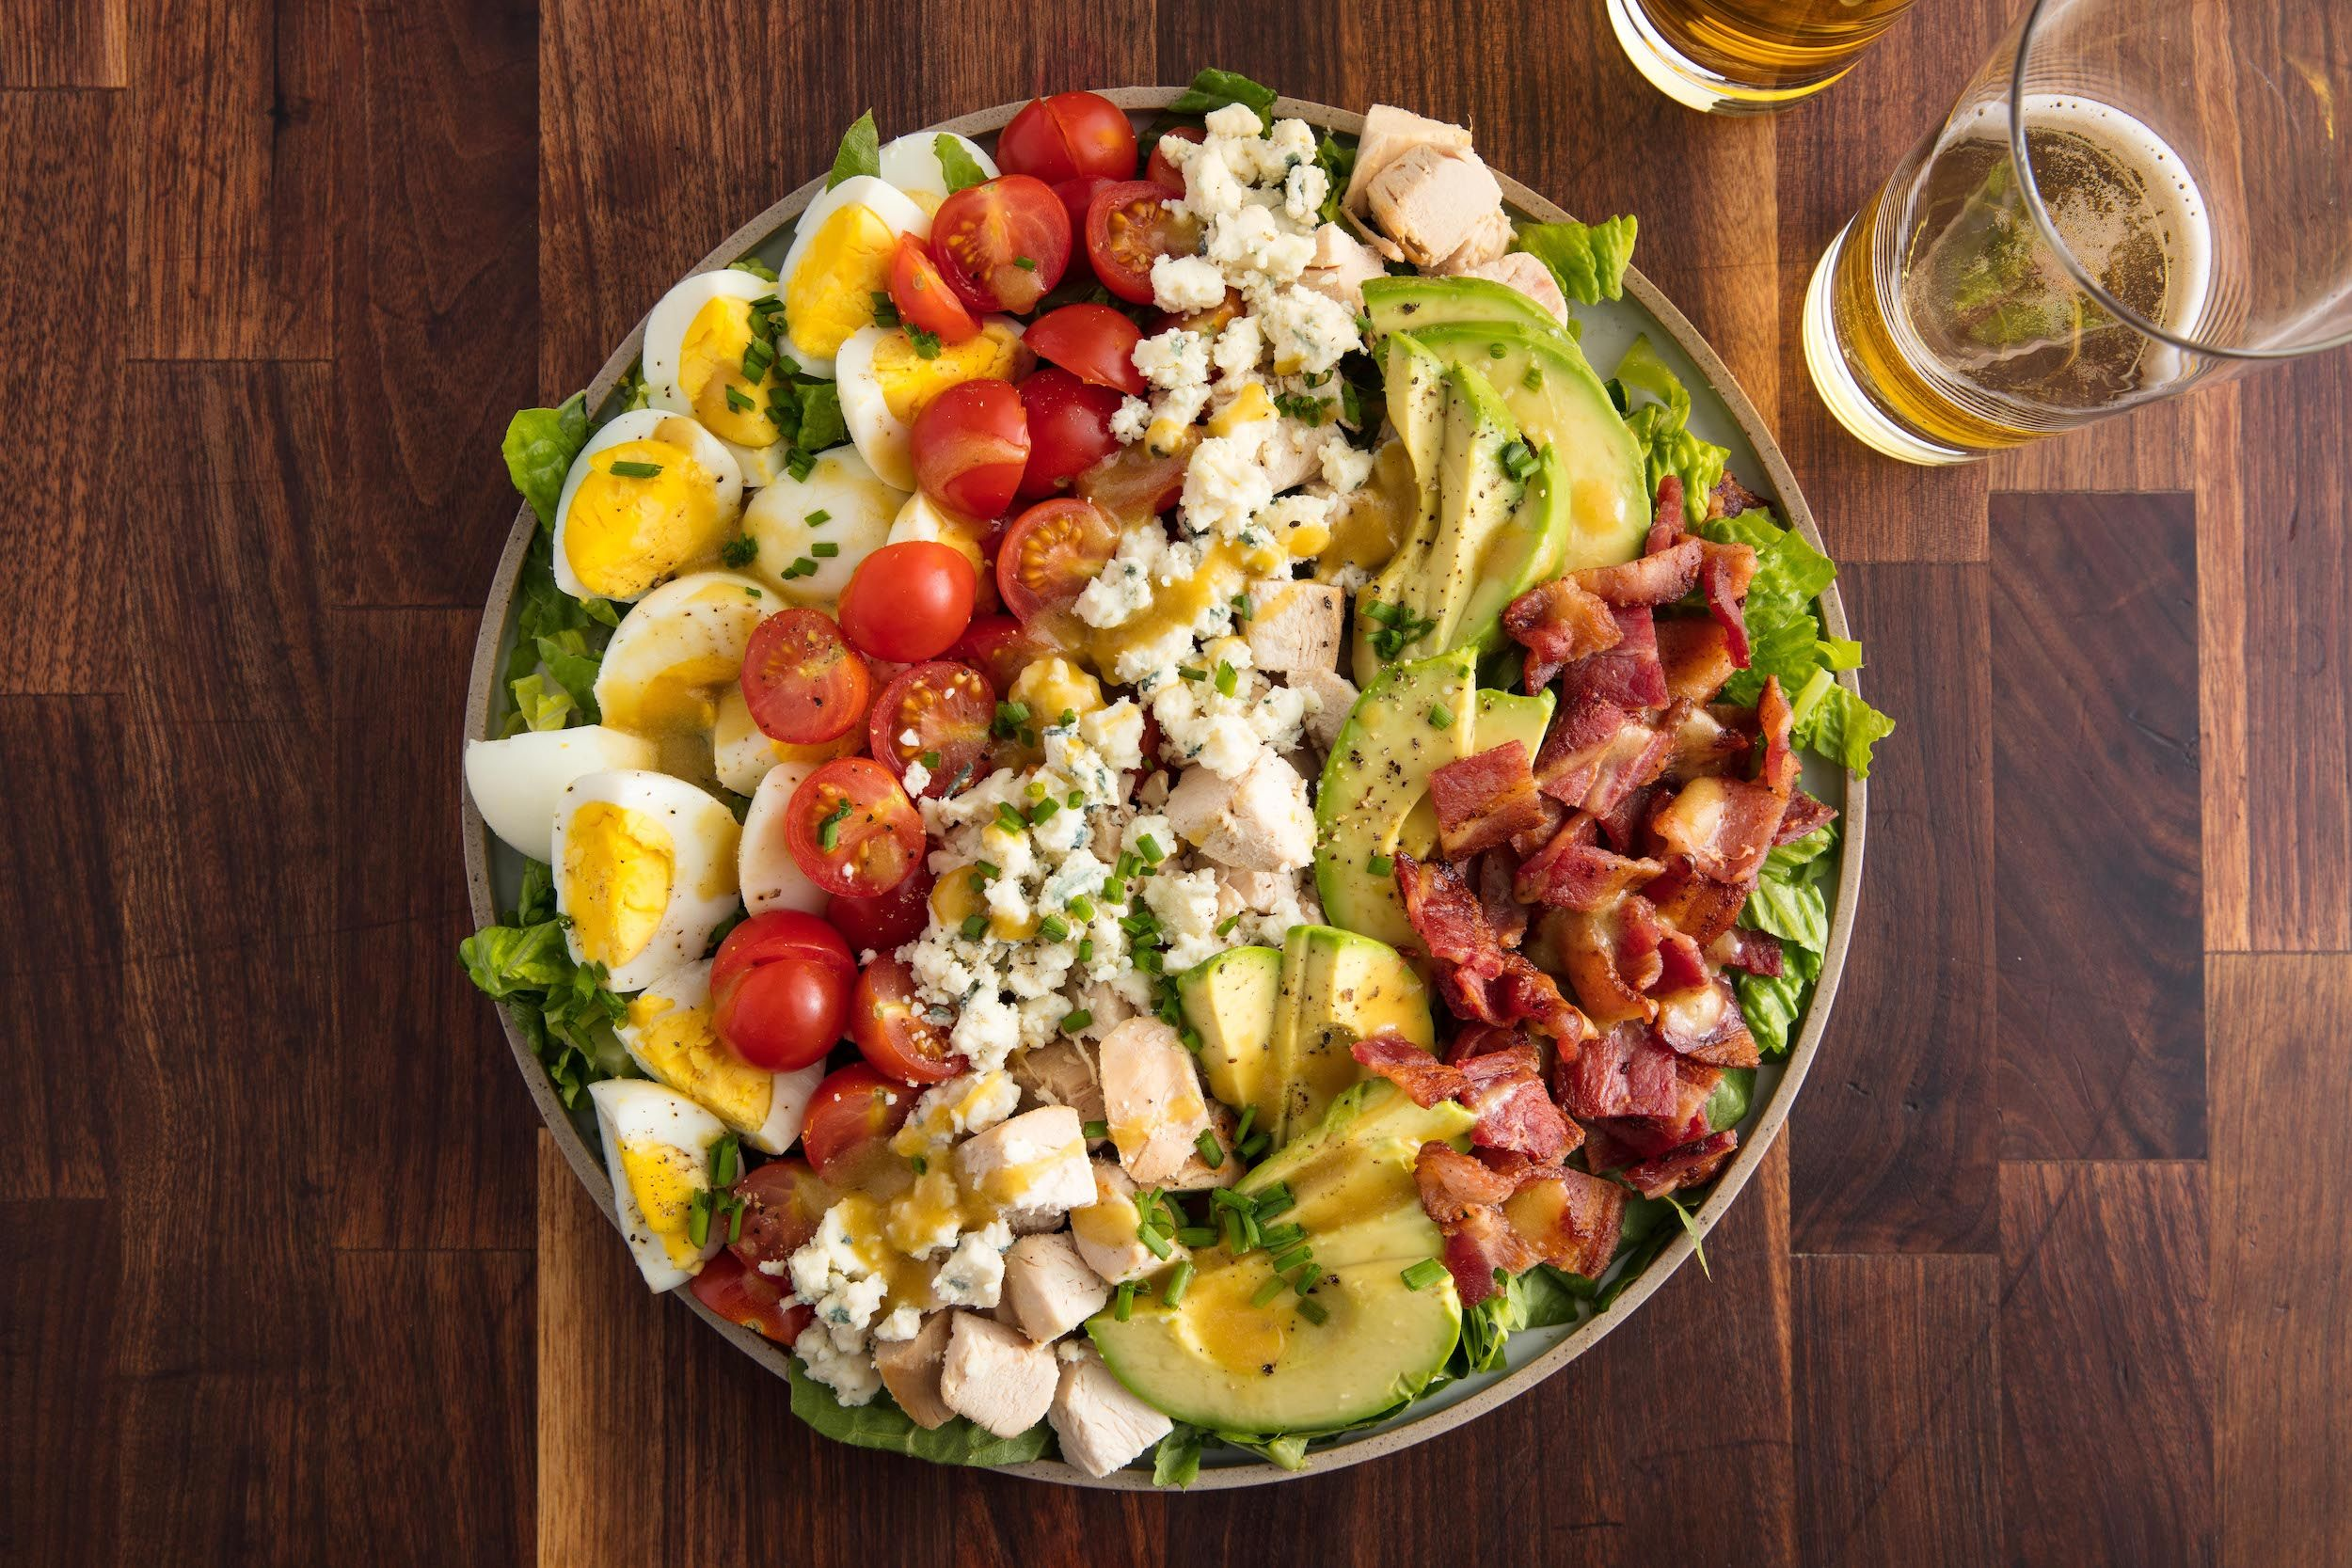 best cobb salad recipe how to make cobb salad